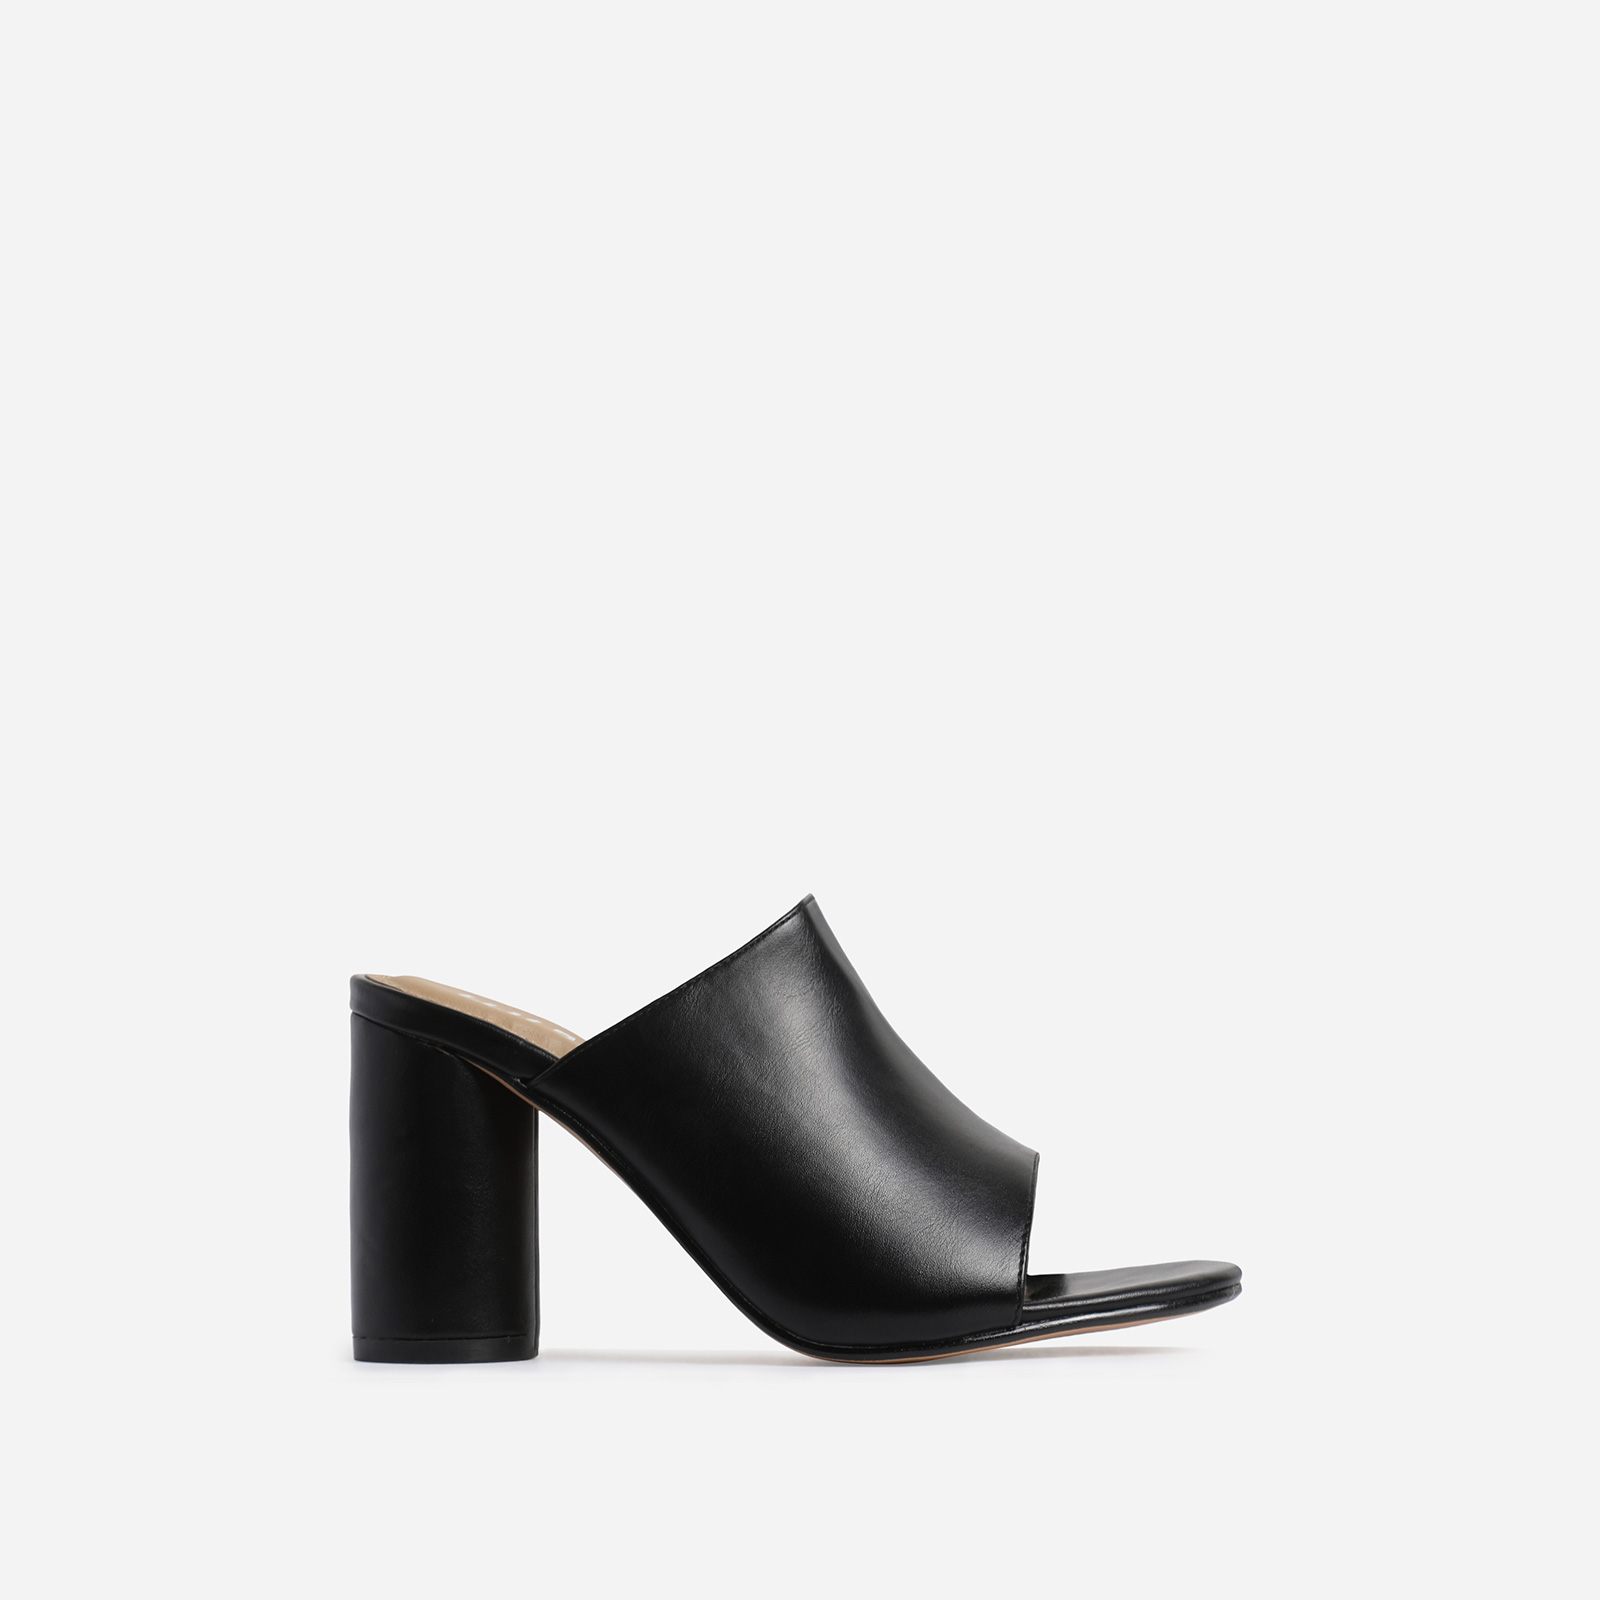 Virgo Peep Toe Block Heel Mule In Black Faux Leather